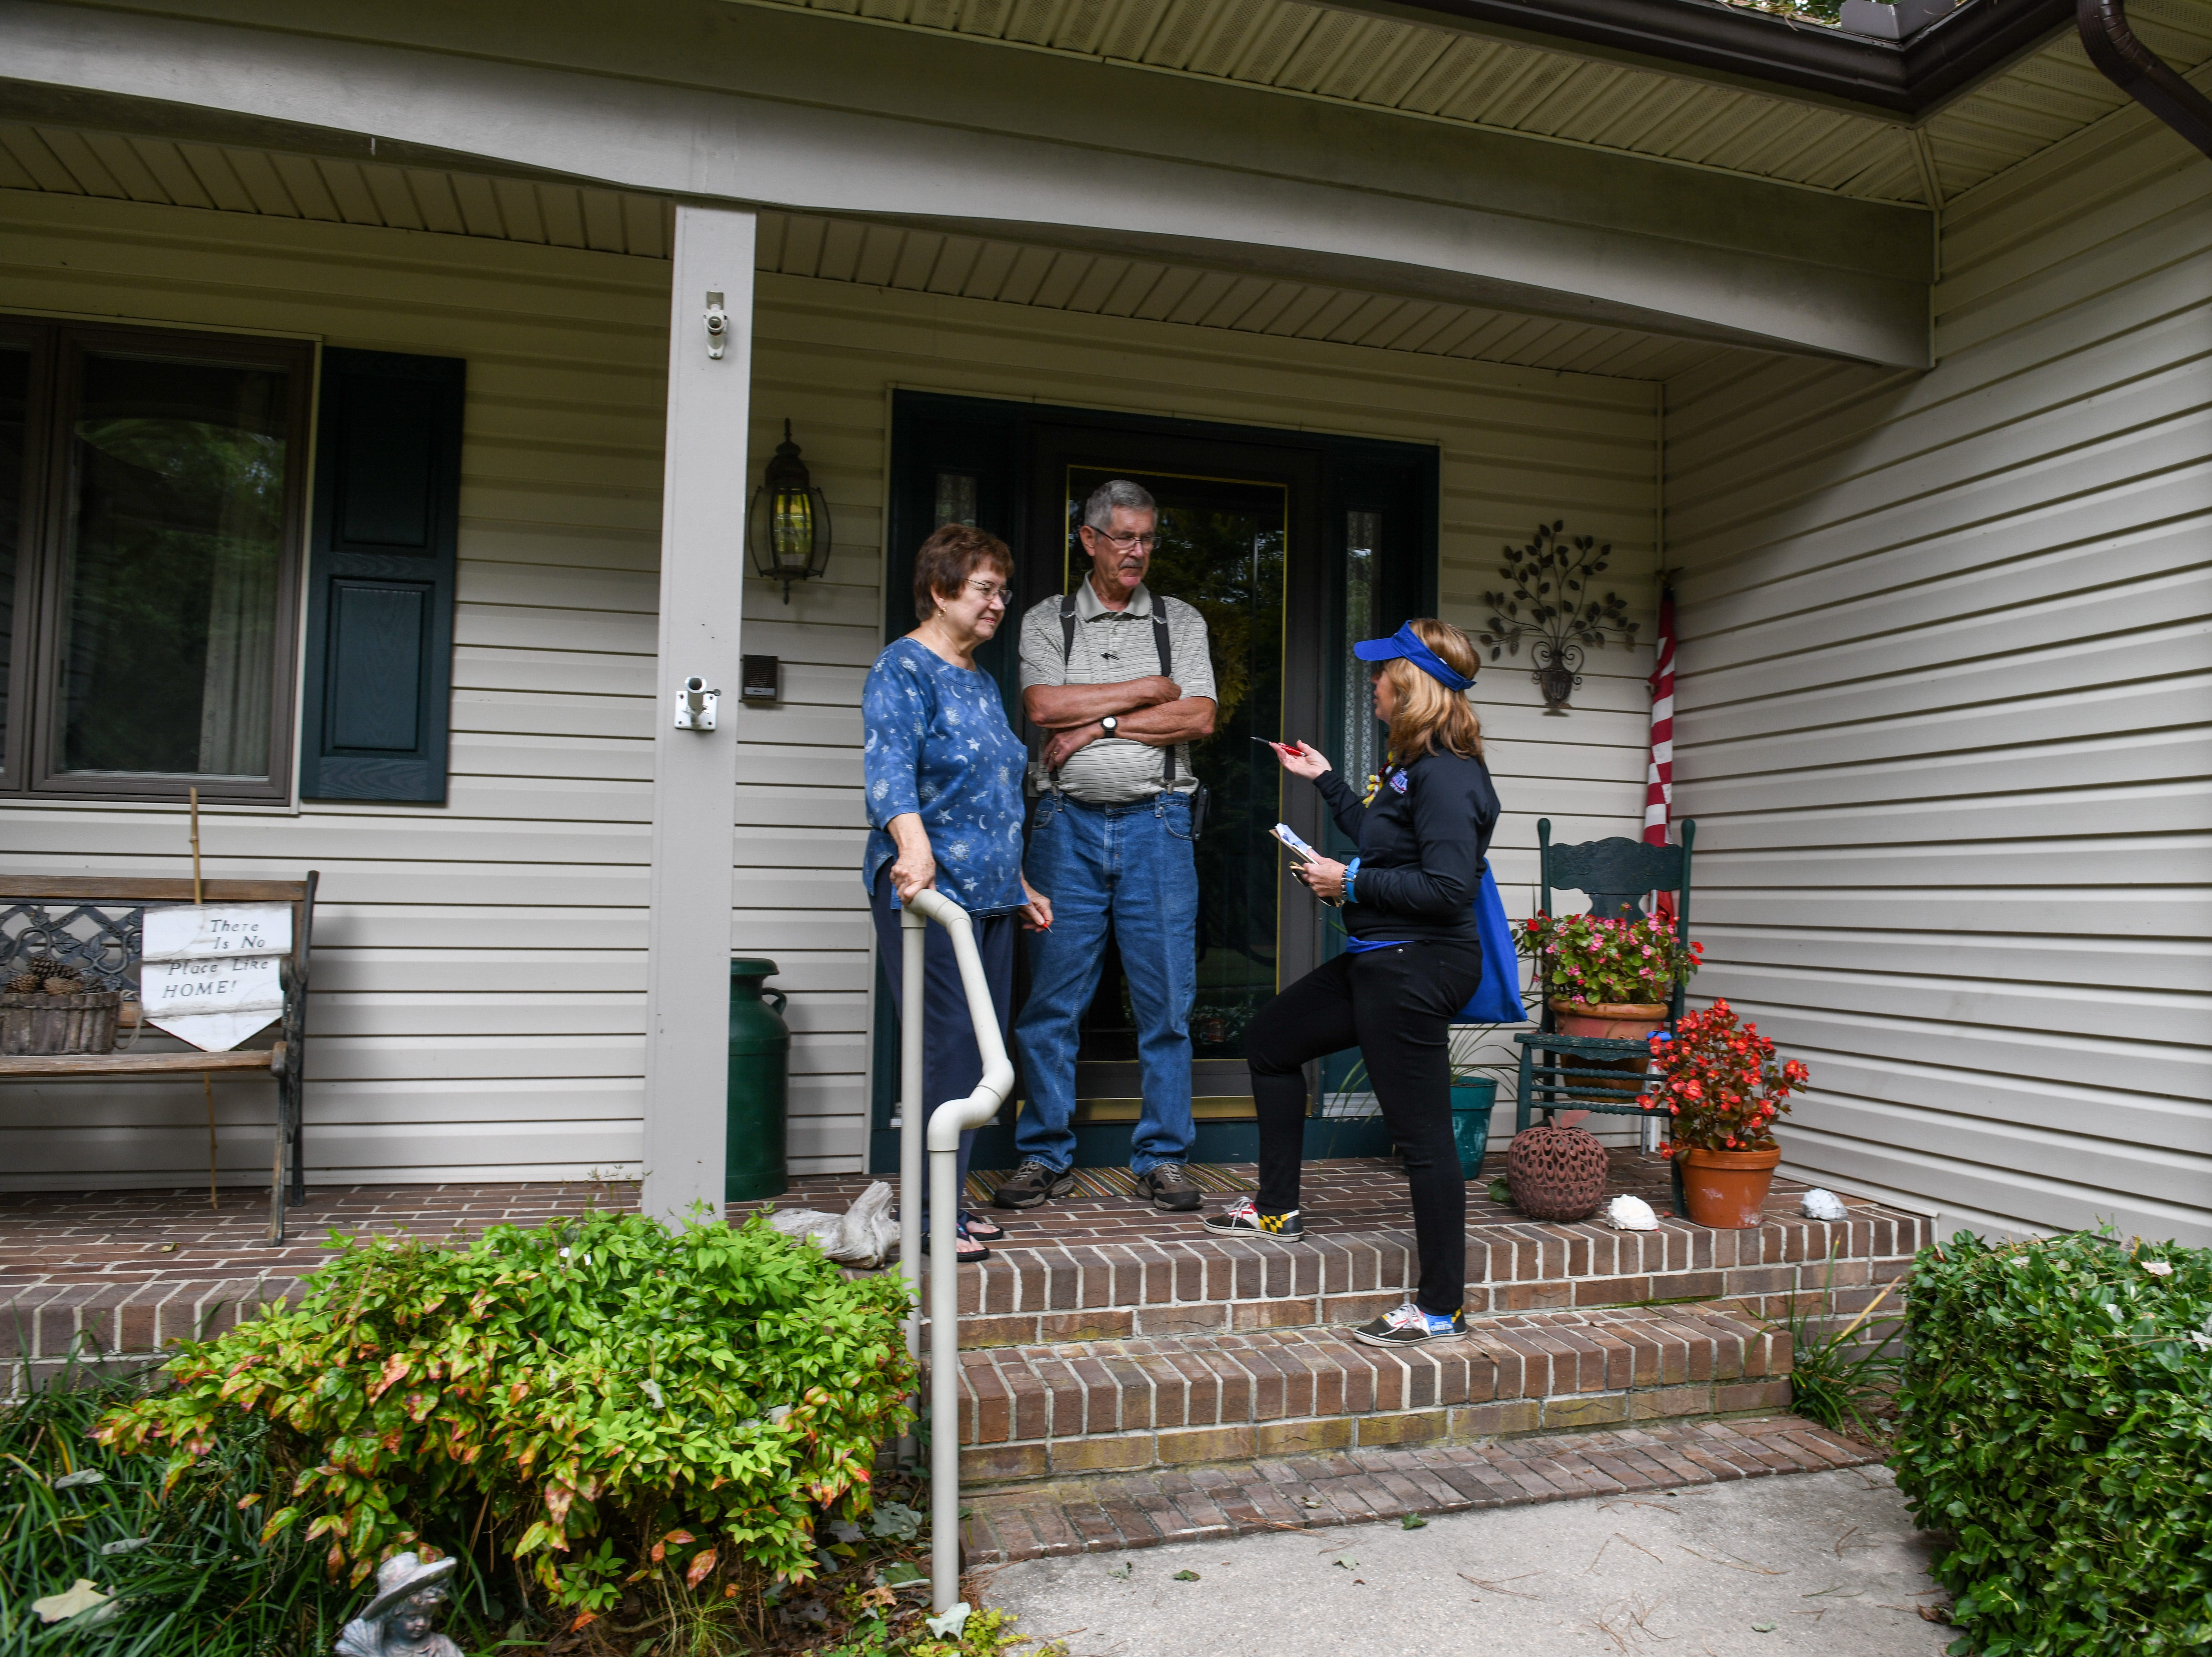 Delegate Mary Beth Carozza, Republican candidate for Maryland State Senate in District 38, talks to voters Andy and Sandy Bouma while canvassing in Salisbury on Saturday, Oct 13, 2018.